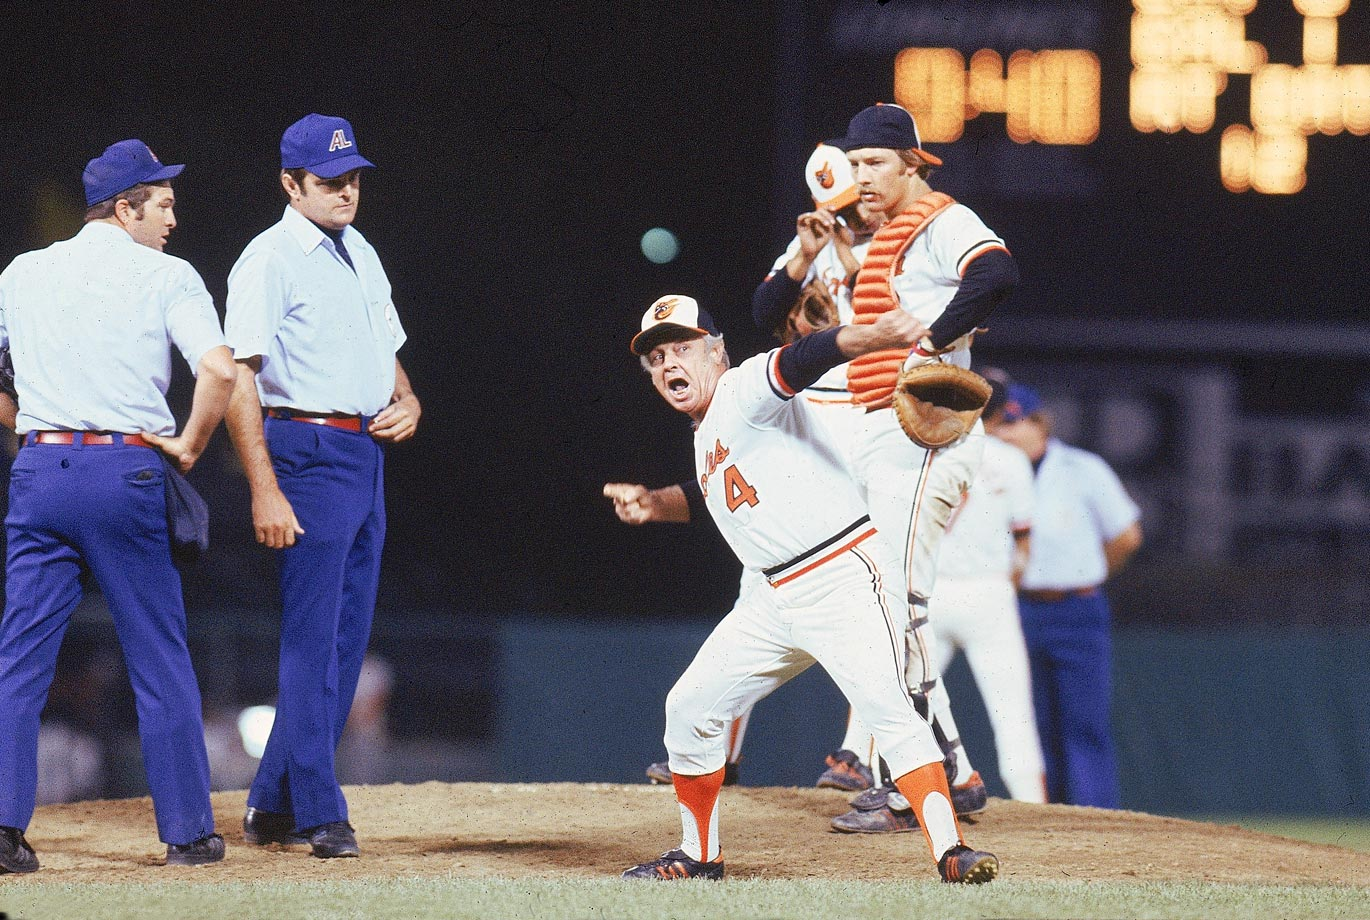 As ornery as he was beloved, Orioles manager Earl Weaver's fiery temperament got him thrown out of 91 games during his coaching tenure. His ejections were so frequent that he'd occasionally jump the gun and toss himself. This photo captures one of those instances.